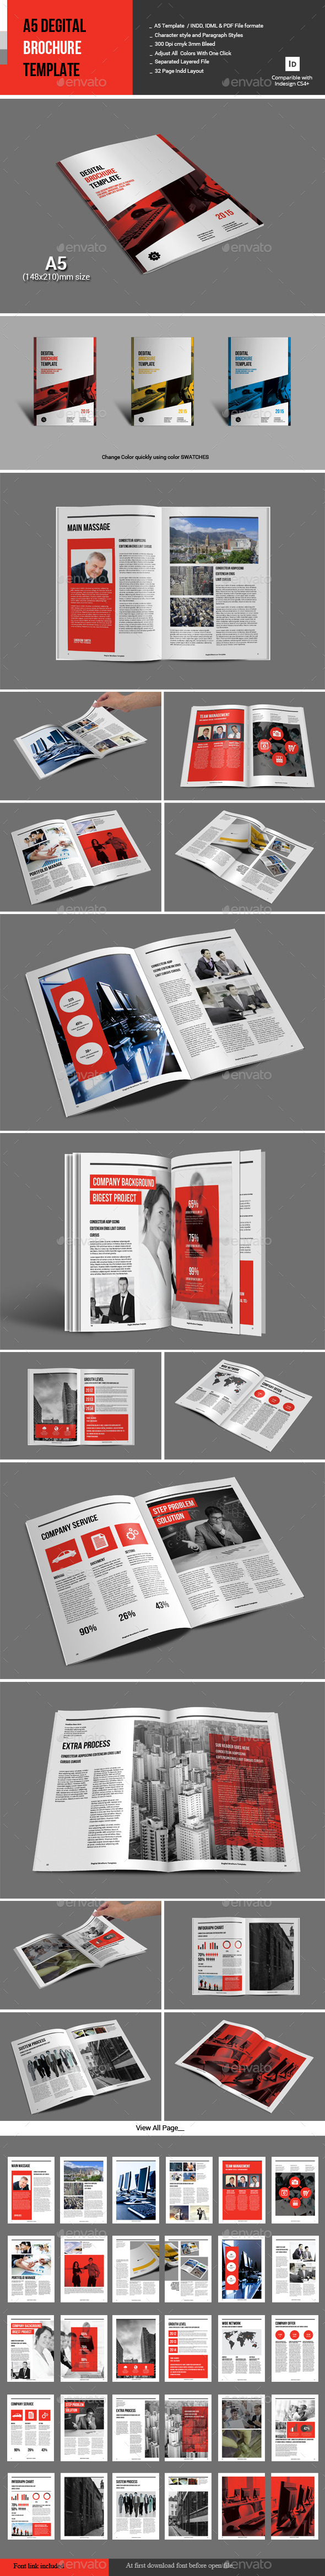 GraphicRiver A5 Degital Brochure Template 10919343